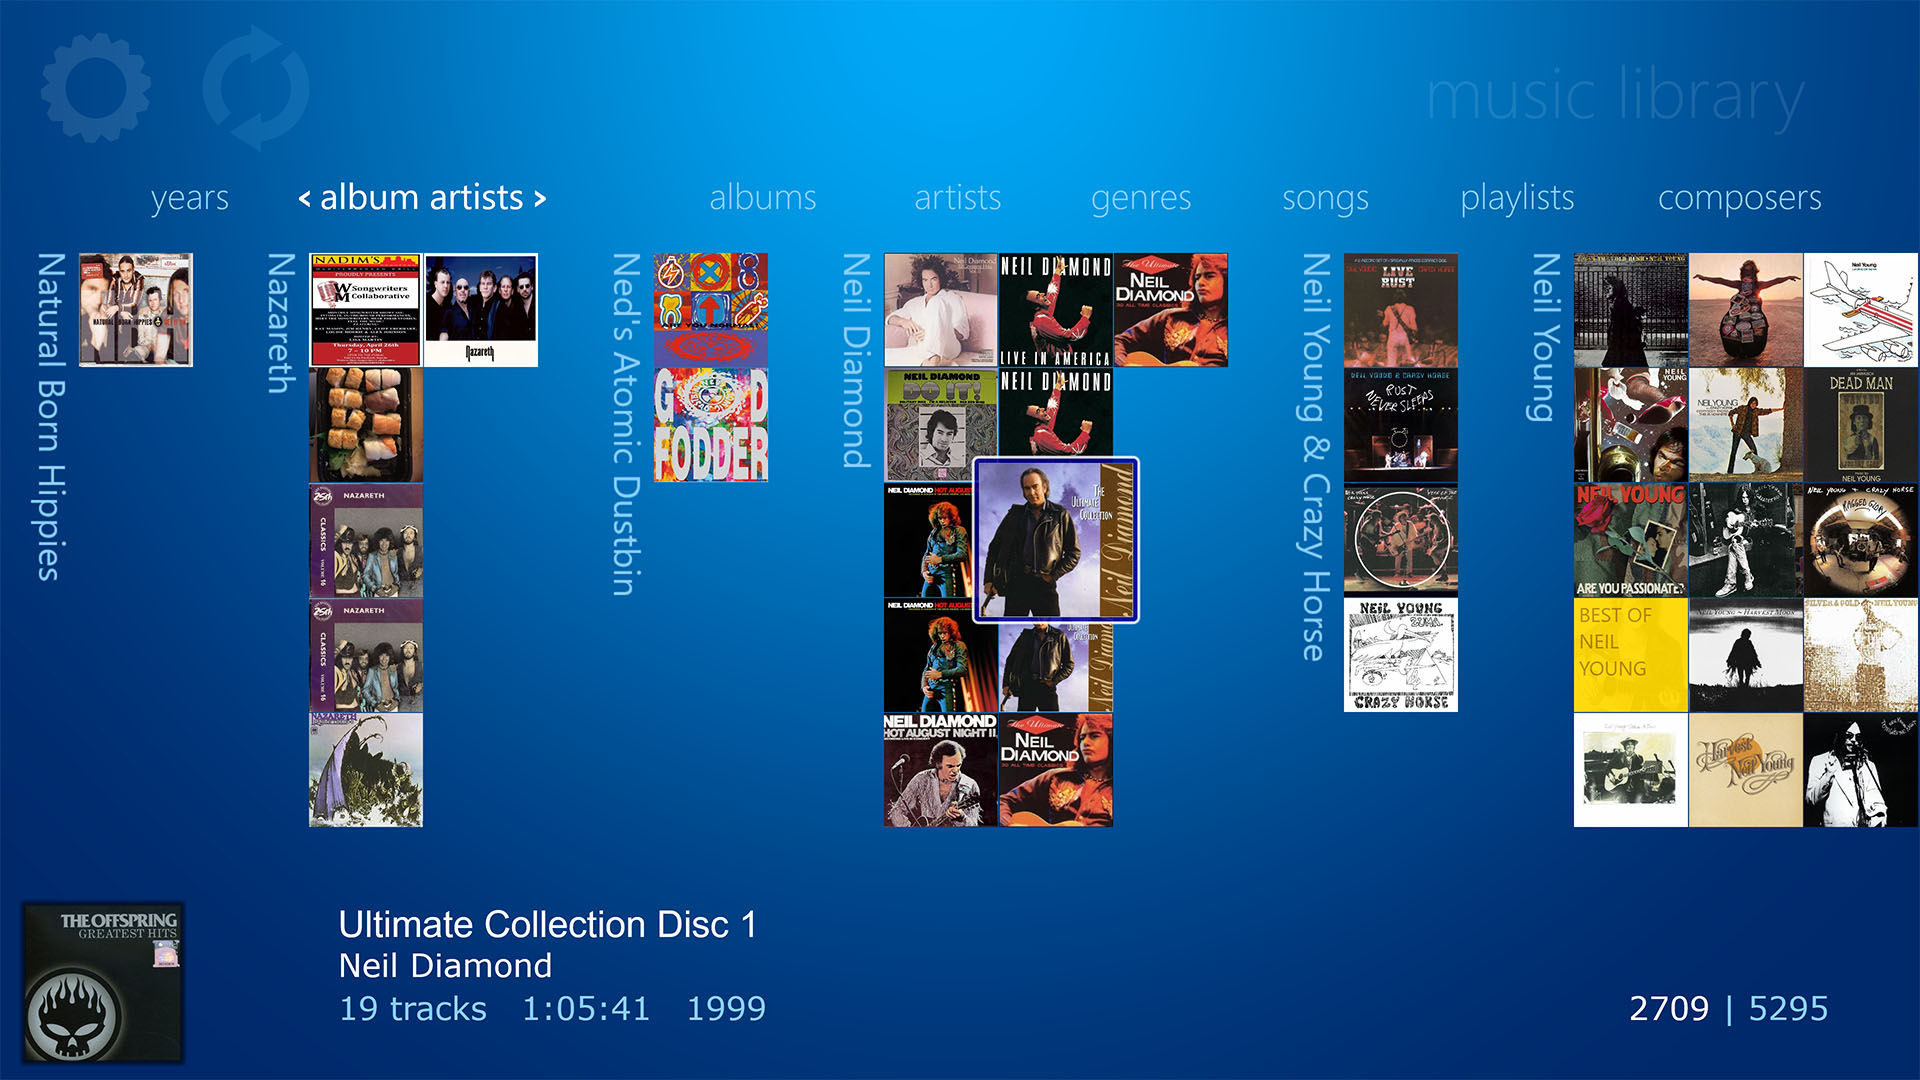 WMC style Music Library displaying all Albums by Artist